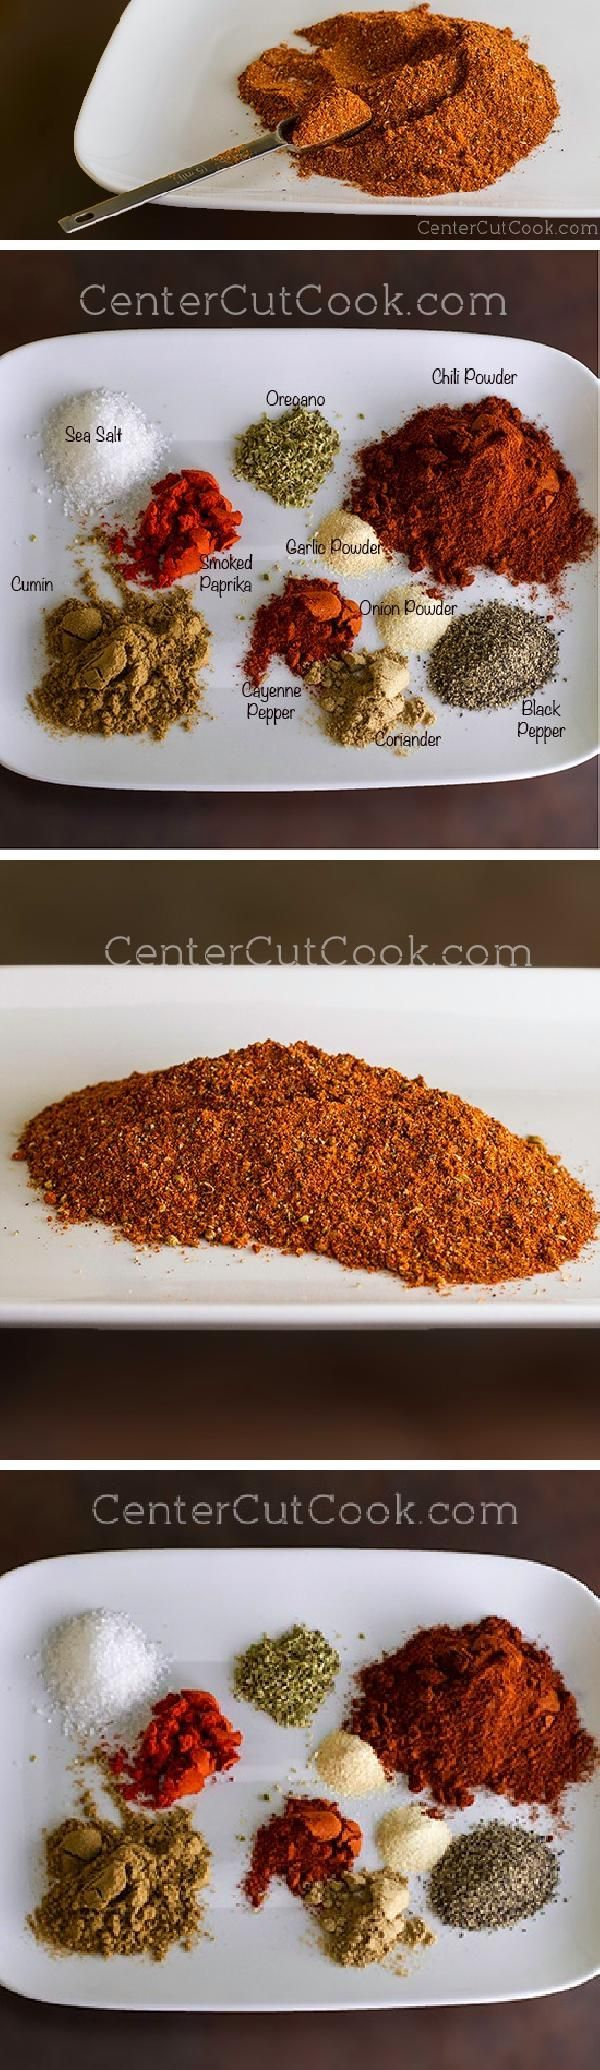 HOMEMADE TACO SEASONING is comprised of 10 different spices and seasonings that you likely already have in your pantry!